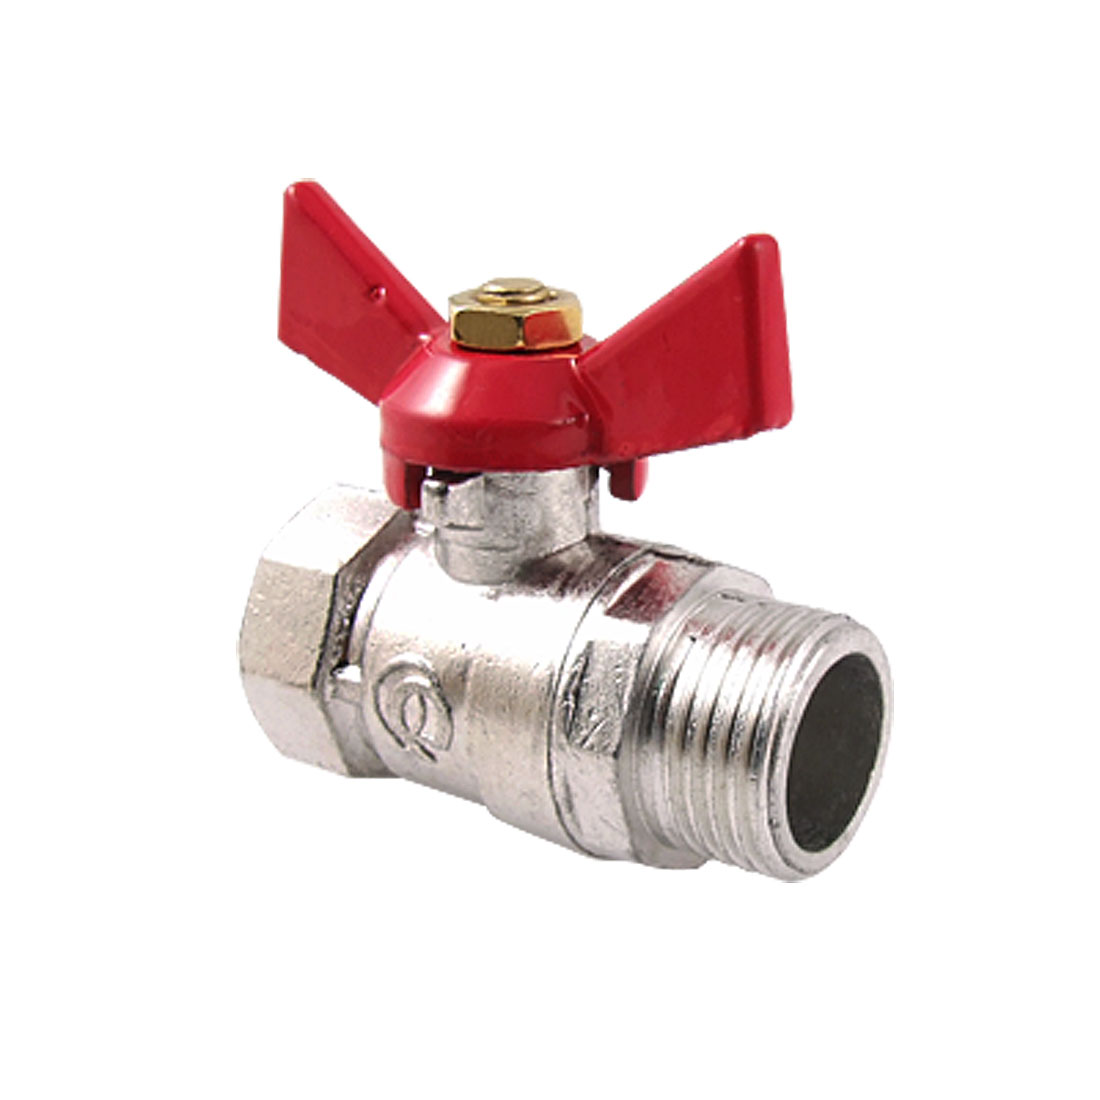 Male to Female Thread Full Port Water Regulator Ball Valve Hmguf